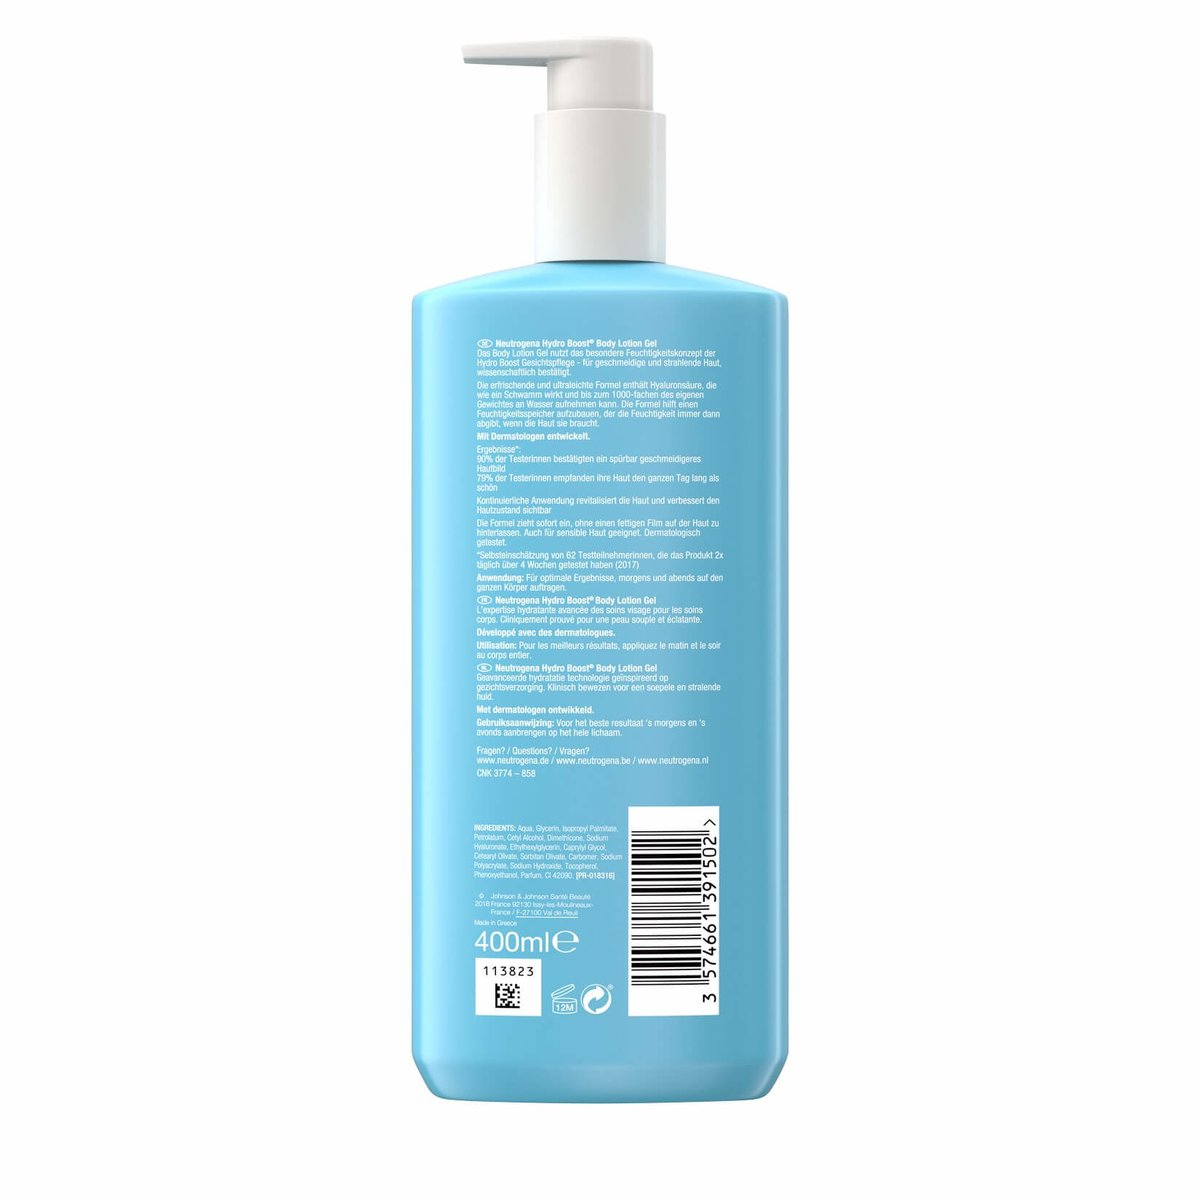 Neutrogena Hydro Boost®Body Lotion Gel